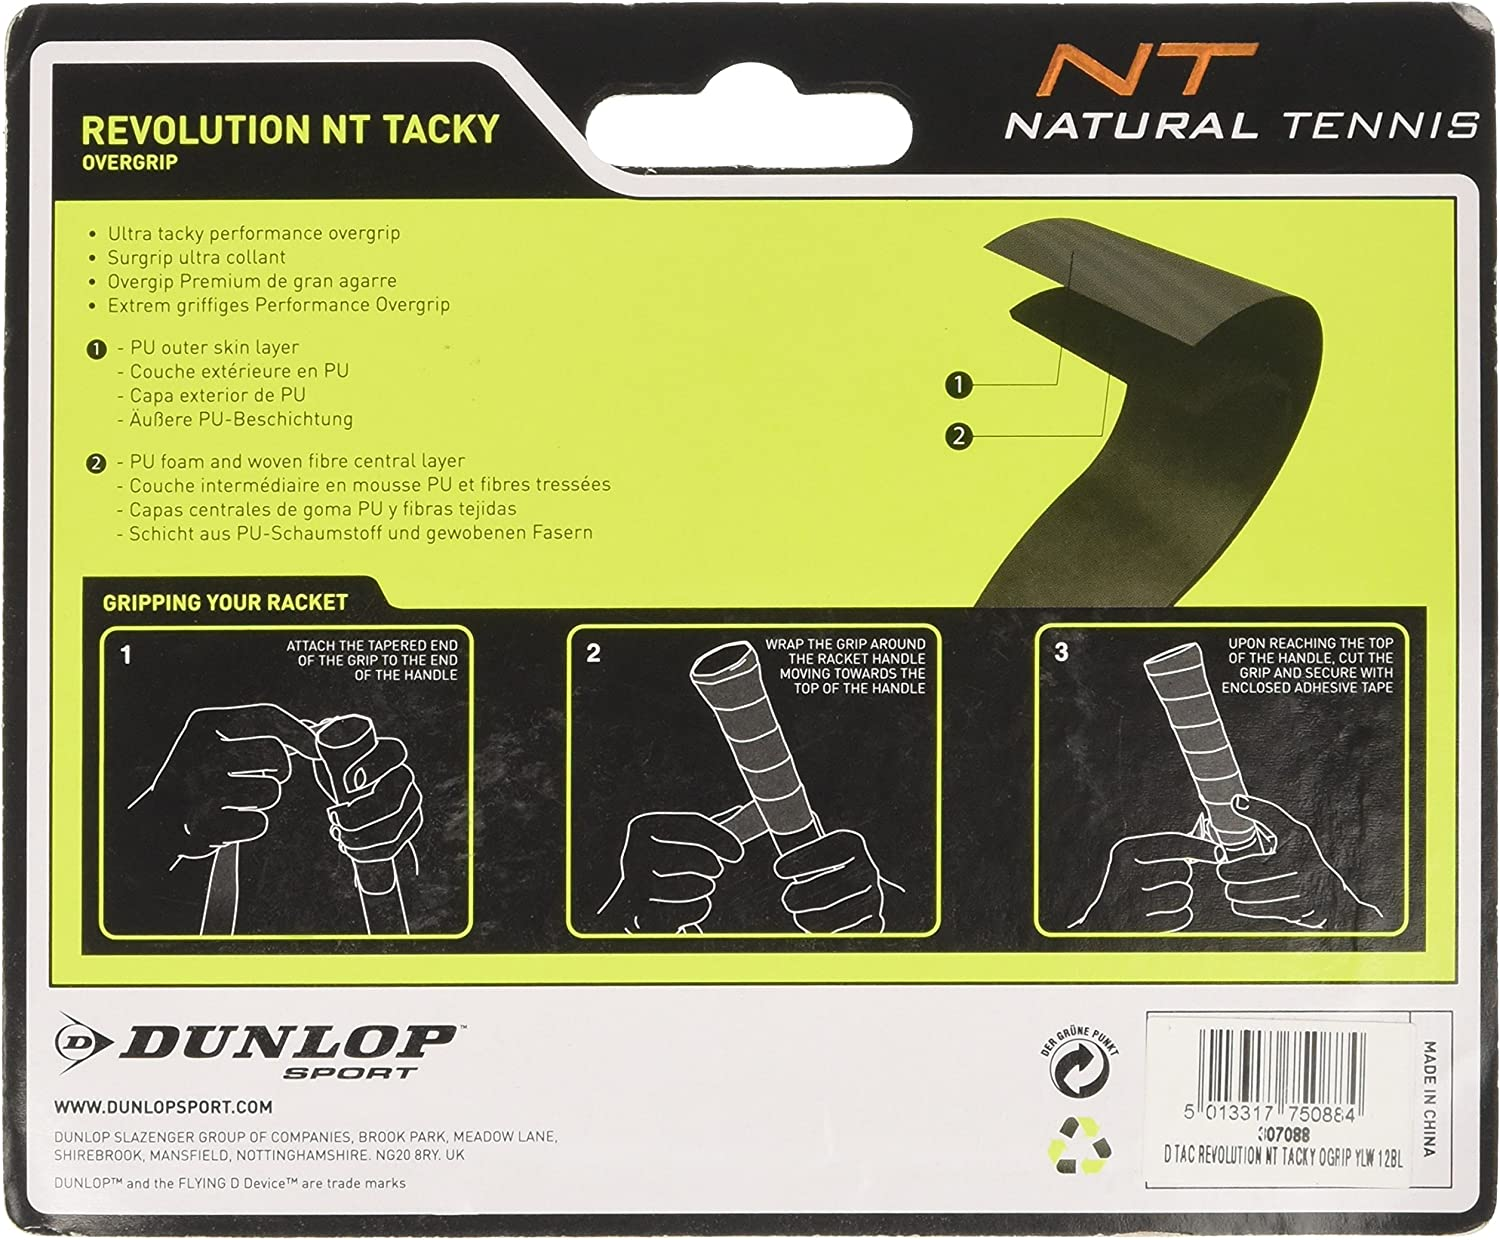 Amarillo One Size DUNLOP Over Grip Revolution NT Tacky 3/Unidades 307088